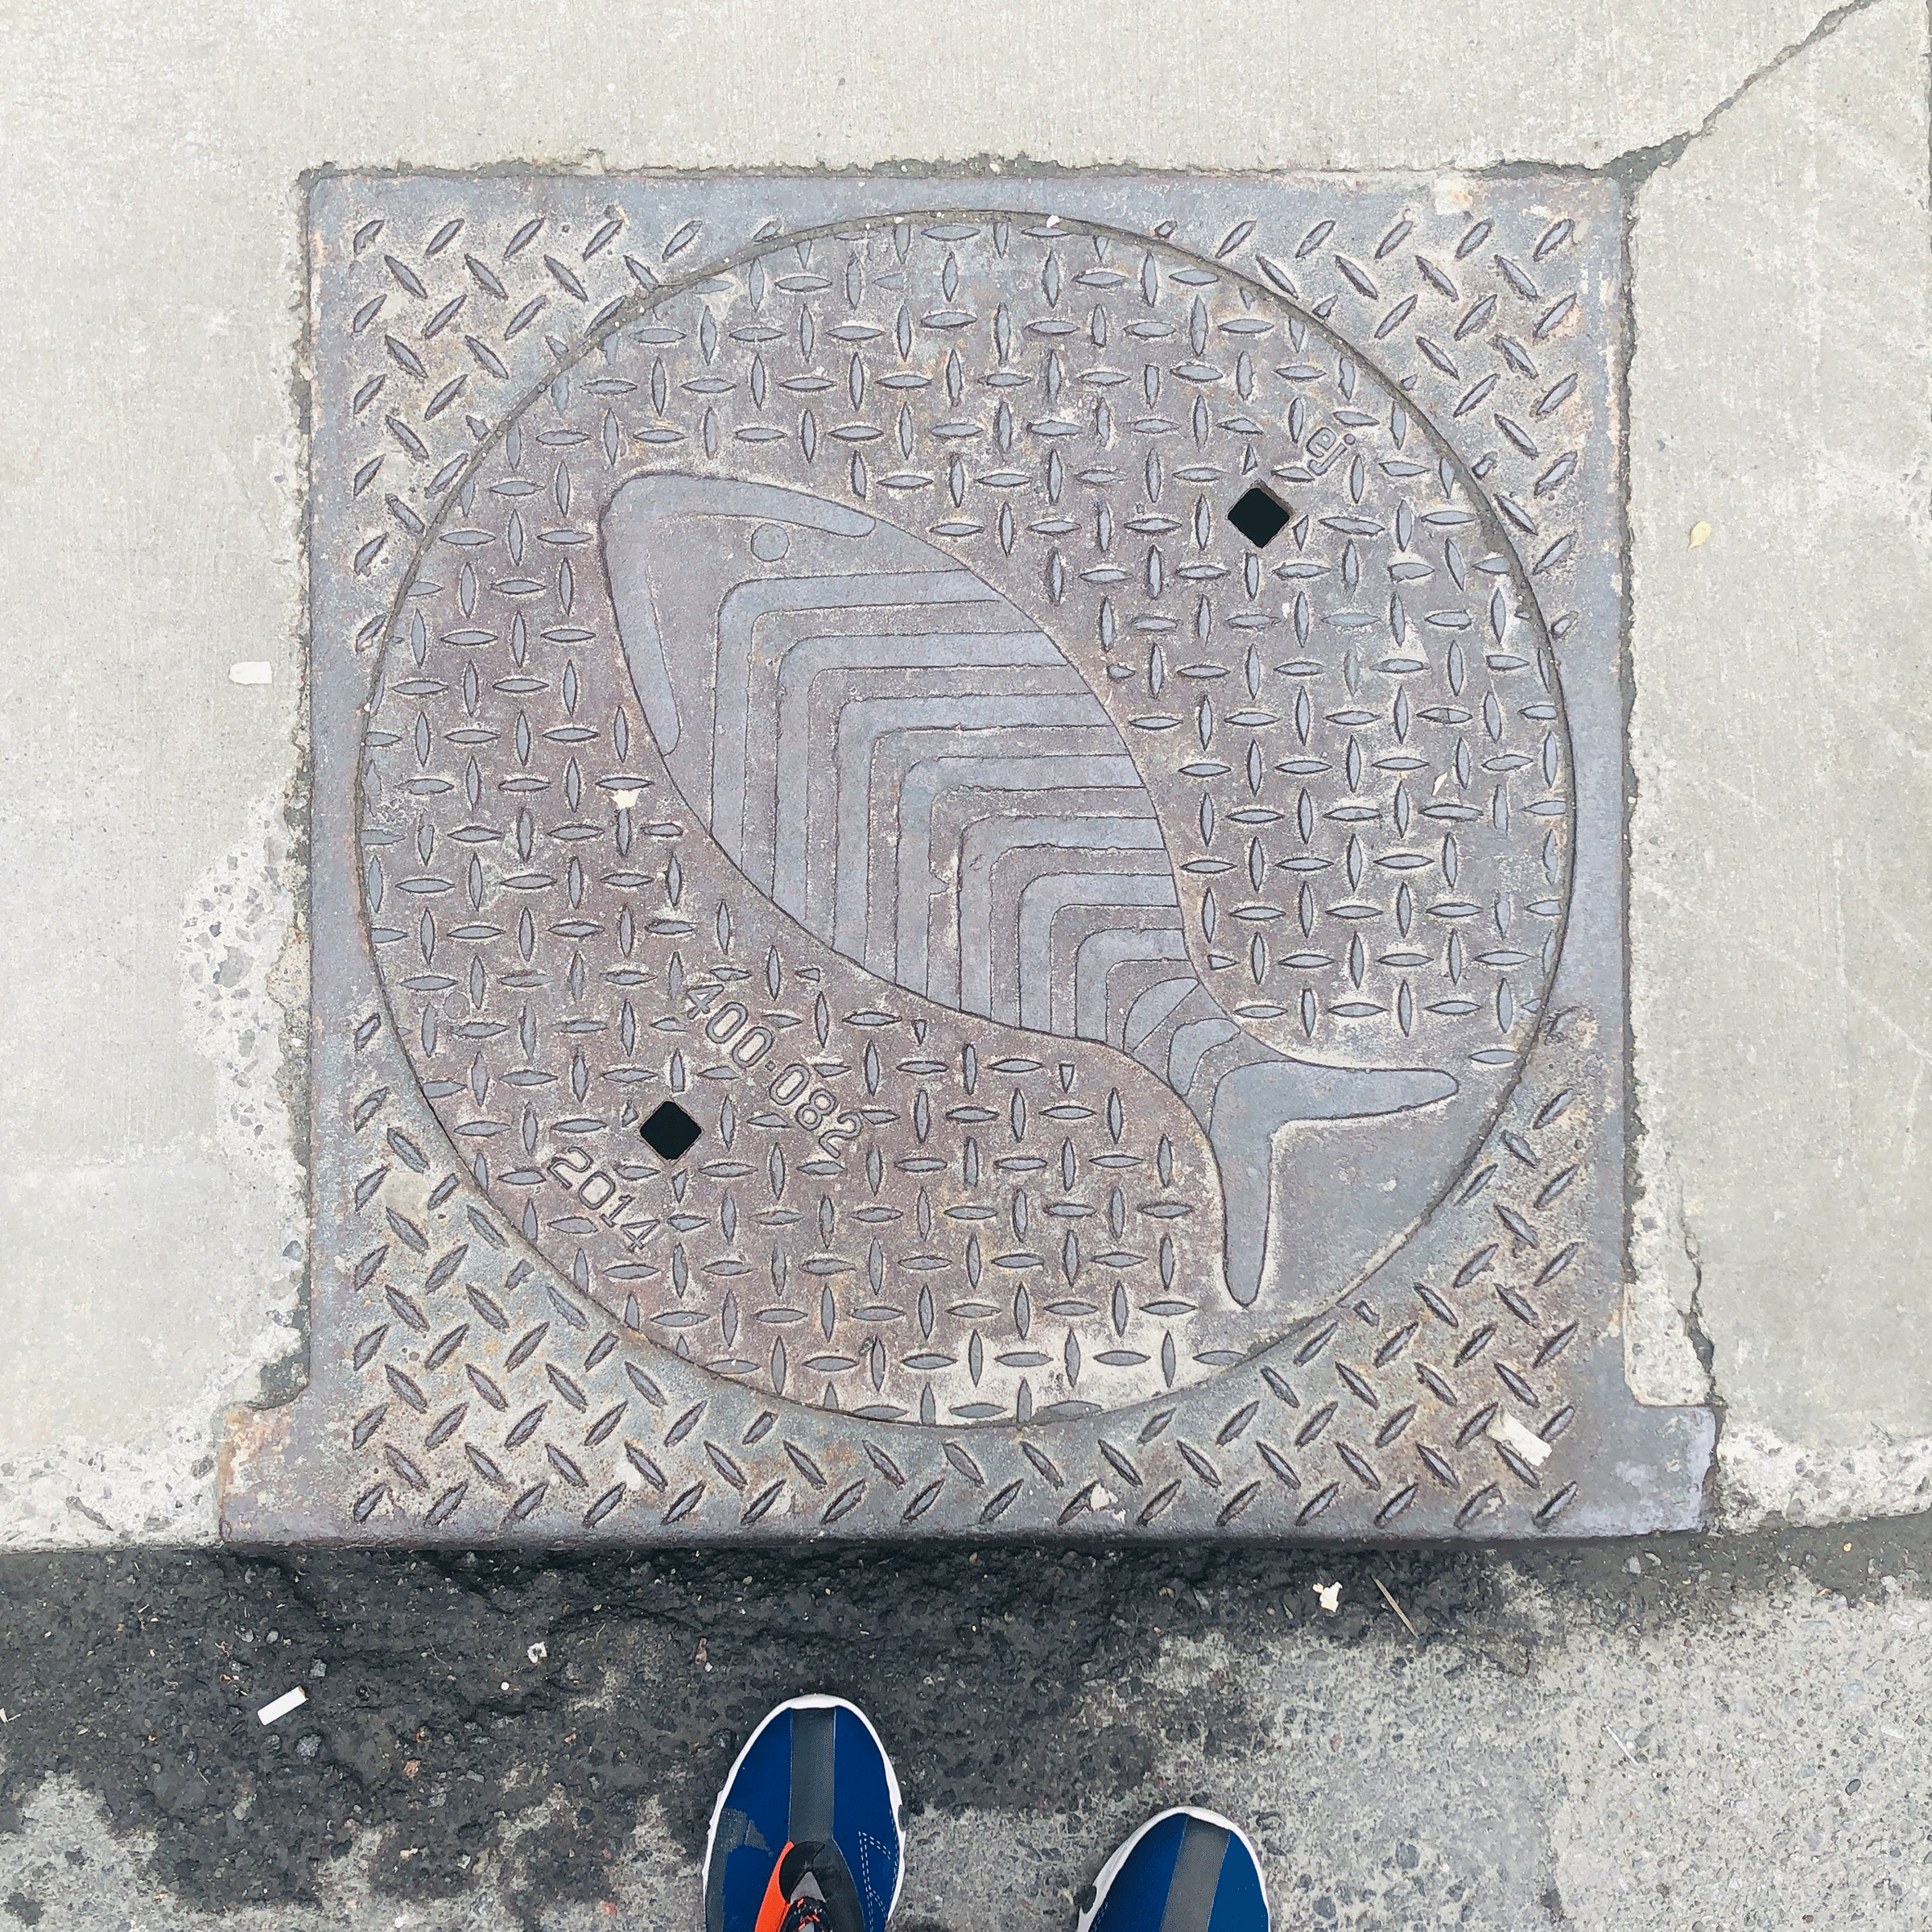 manhole cover with fish and pattern